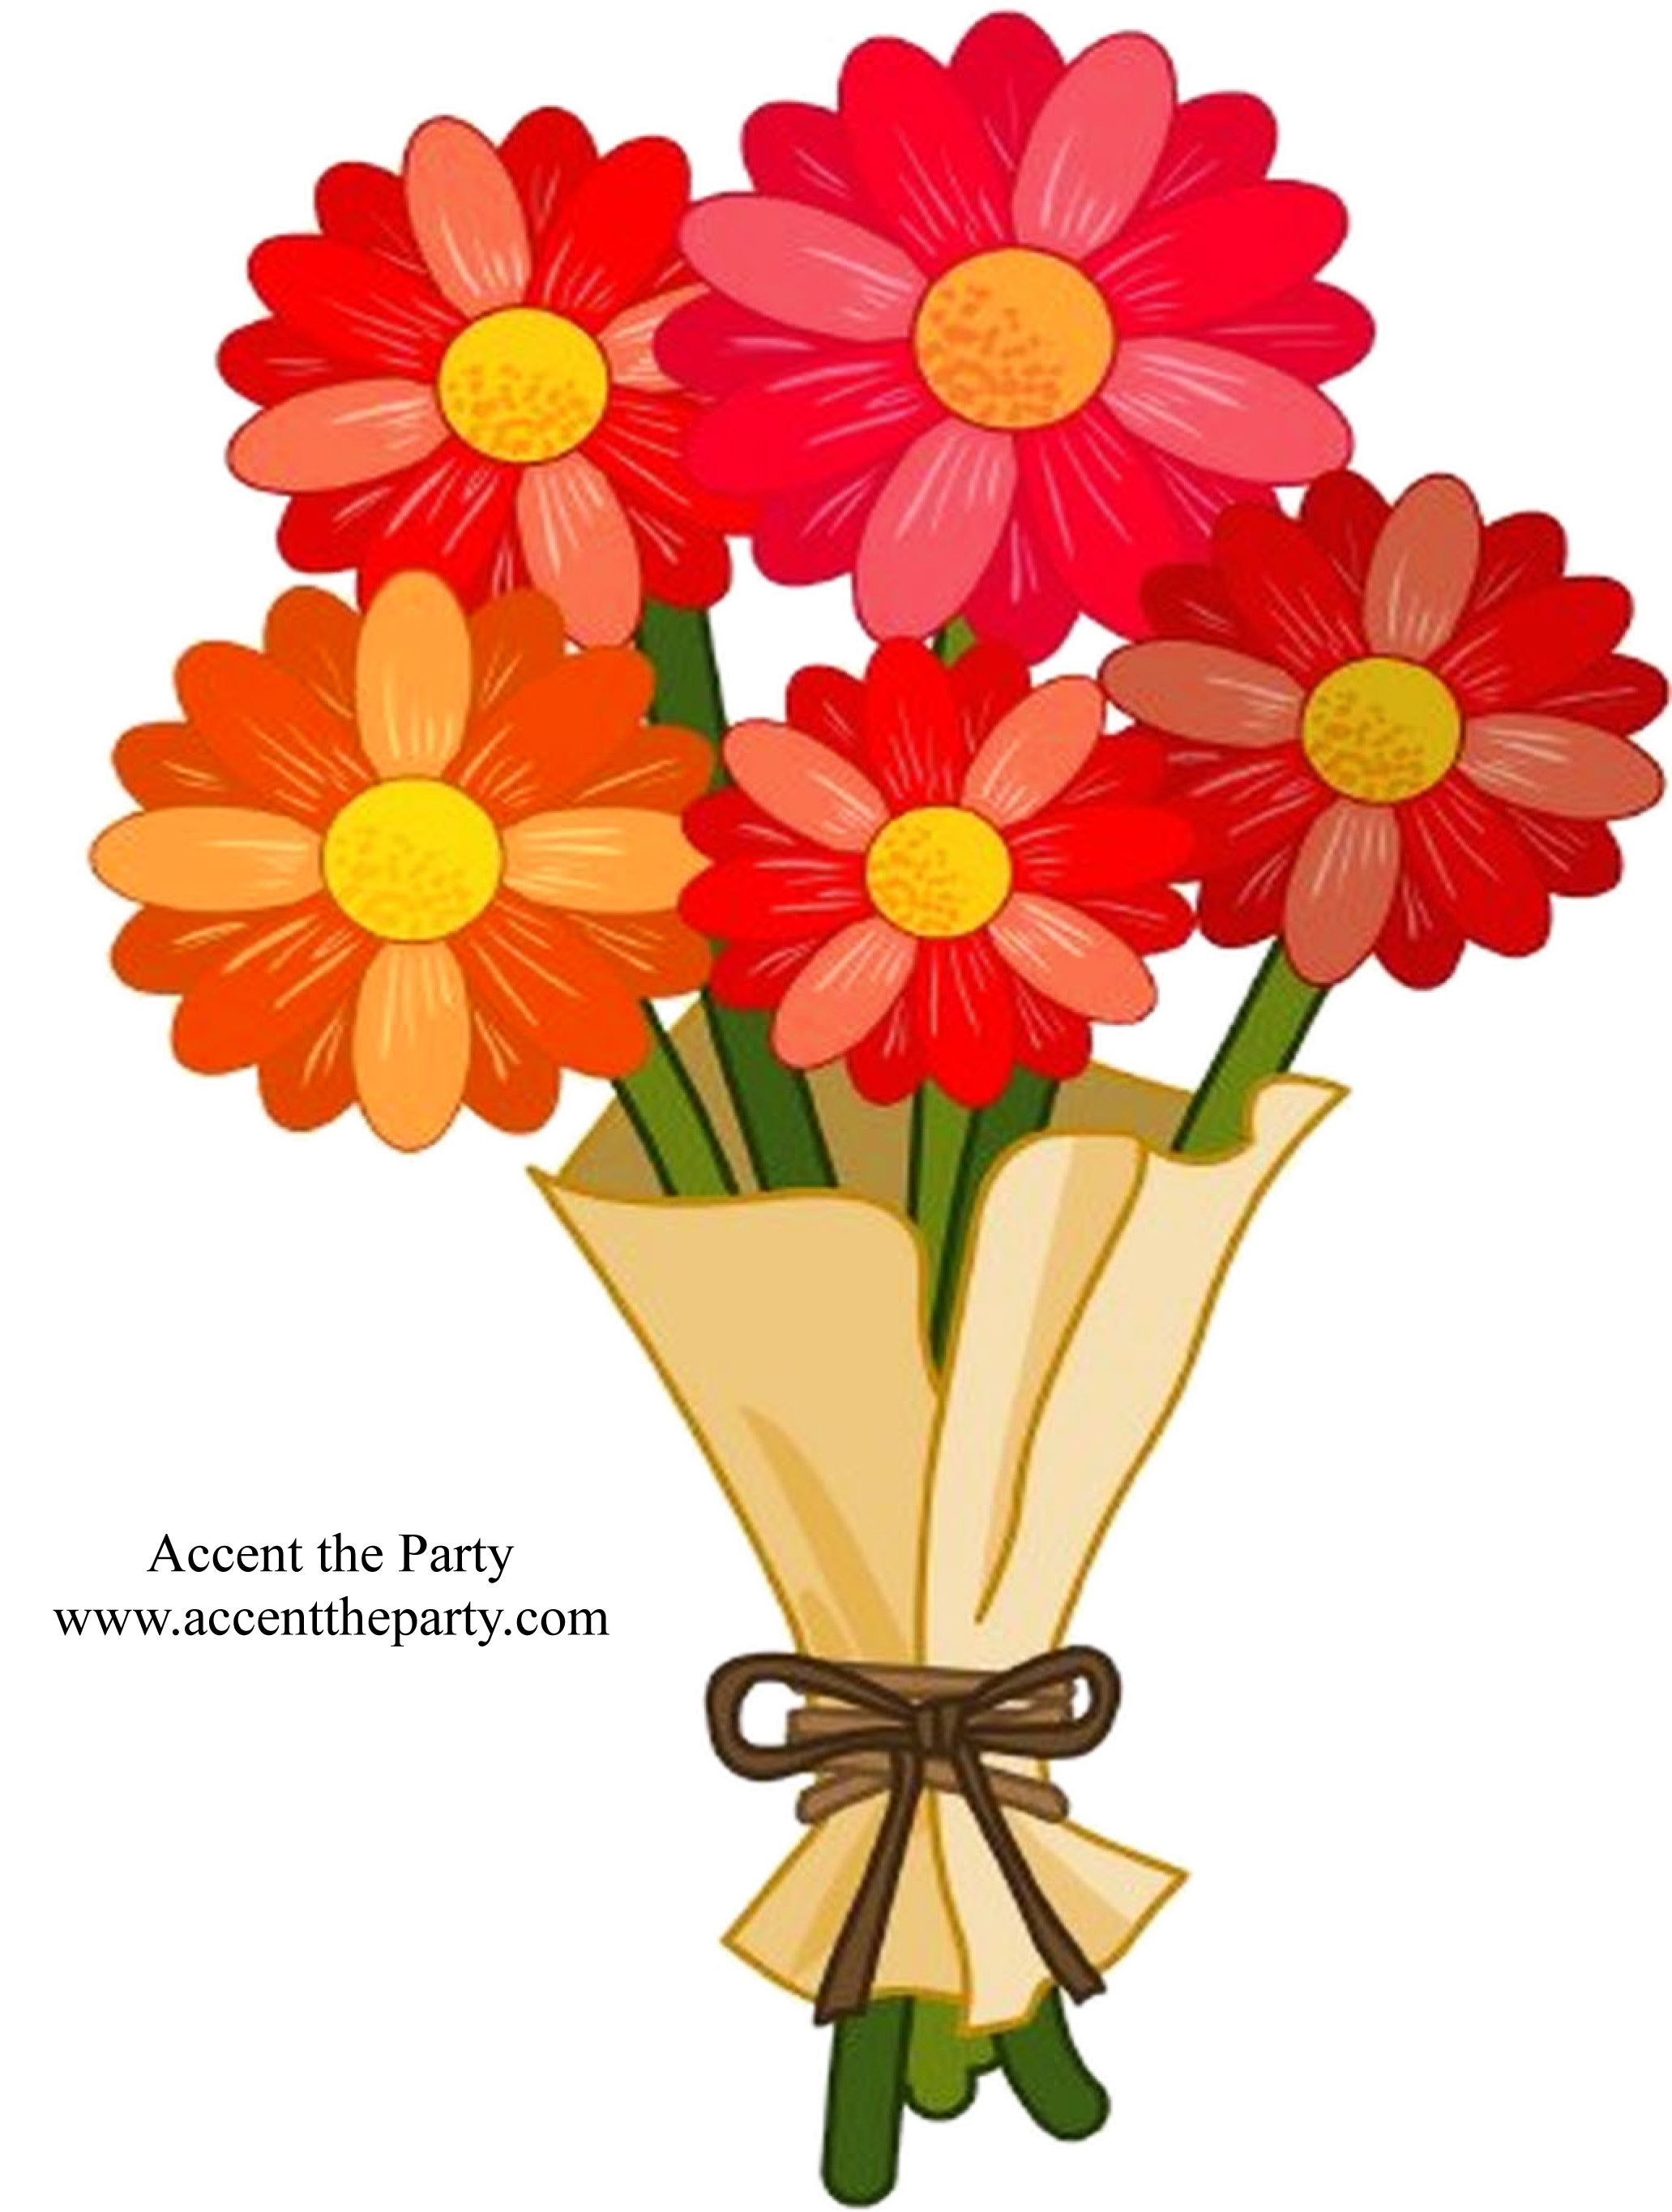 Clipart butterfly 3 butterfly images clip art 1920 1600 jpeg - Clip Art Of A Bouquet Of Red Daisy Flowers Wrapped In Brown Paper With Seo And Internet Marketing Is The Best Combination